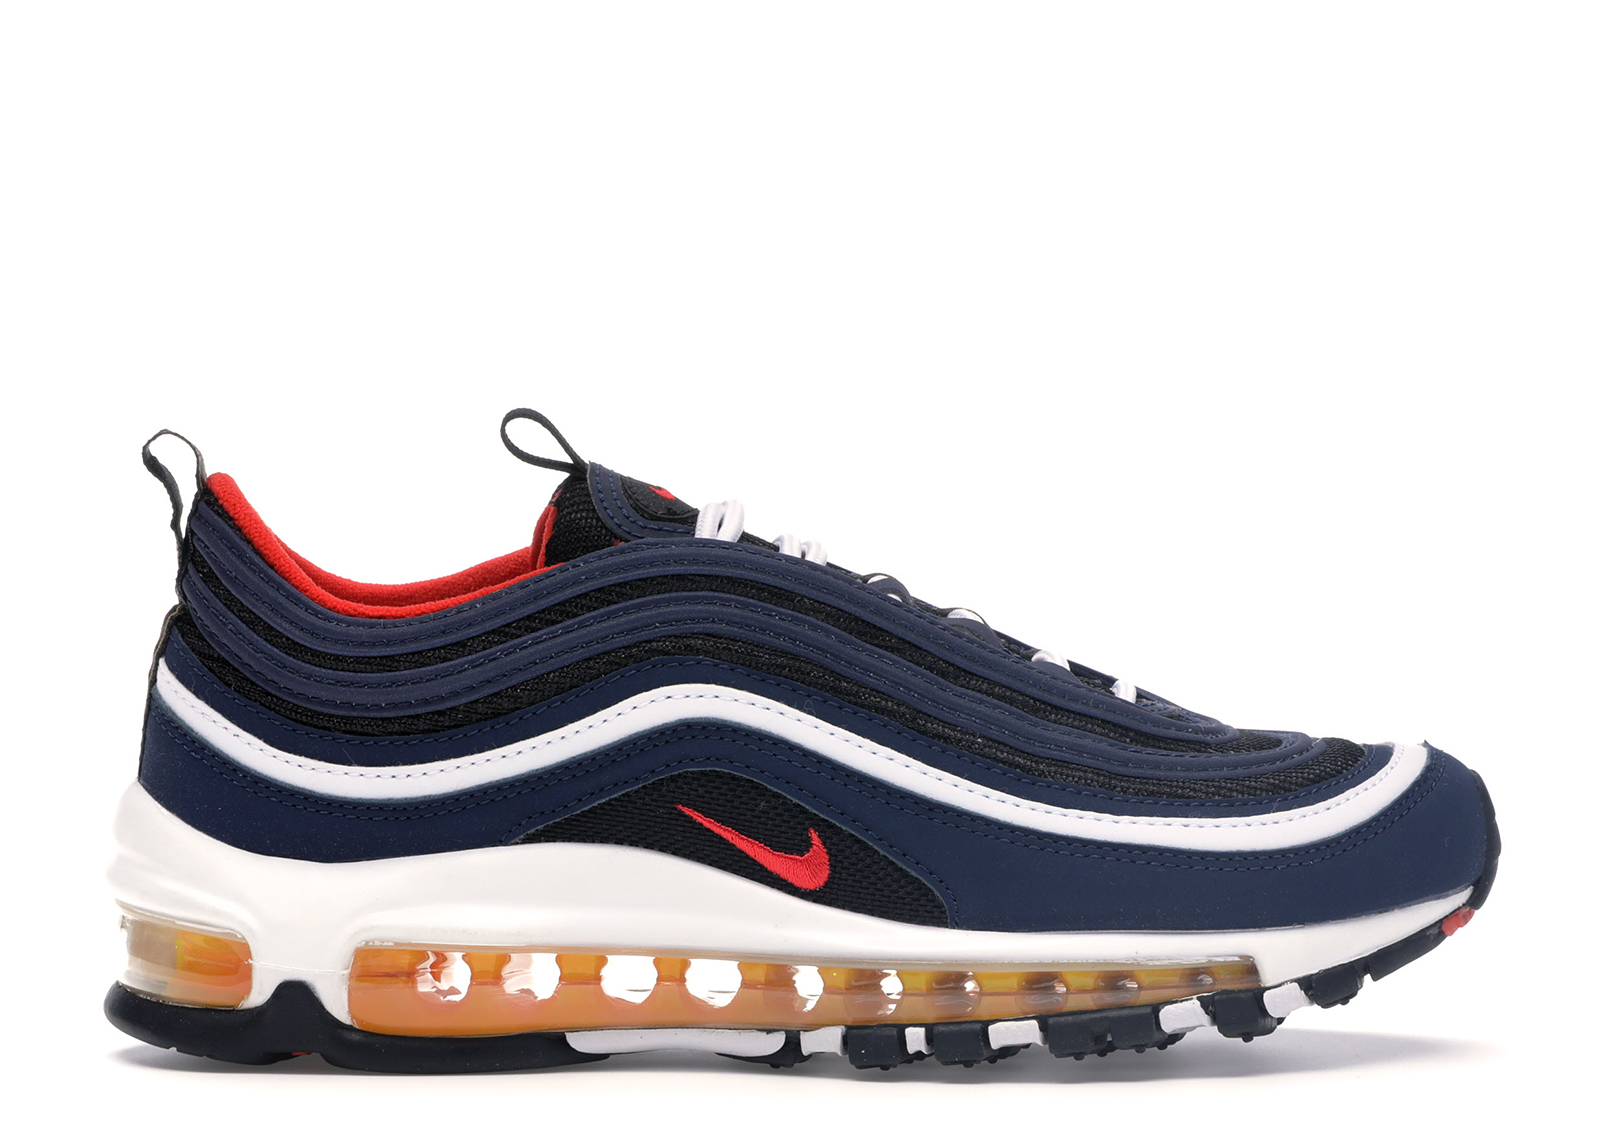 Nike Air Max 97 Midnight Navy Habanero Red (GS)